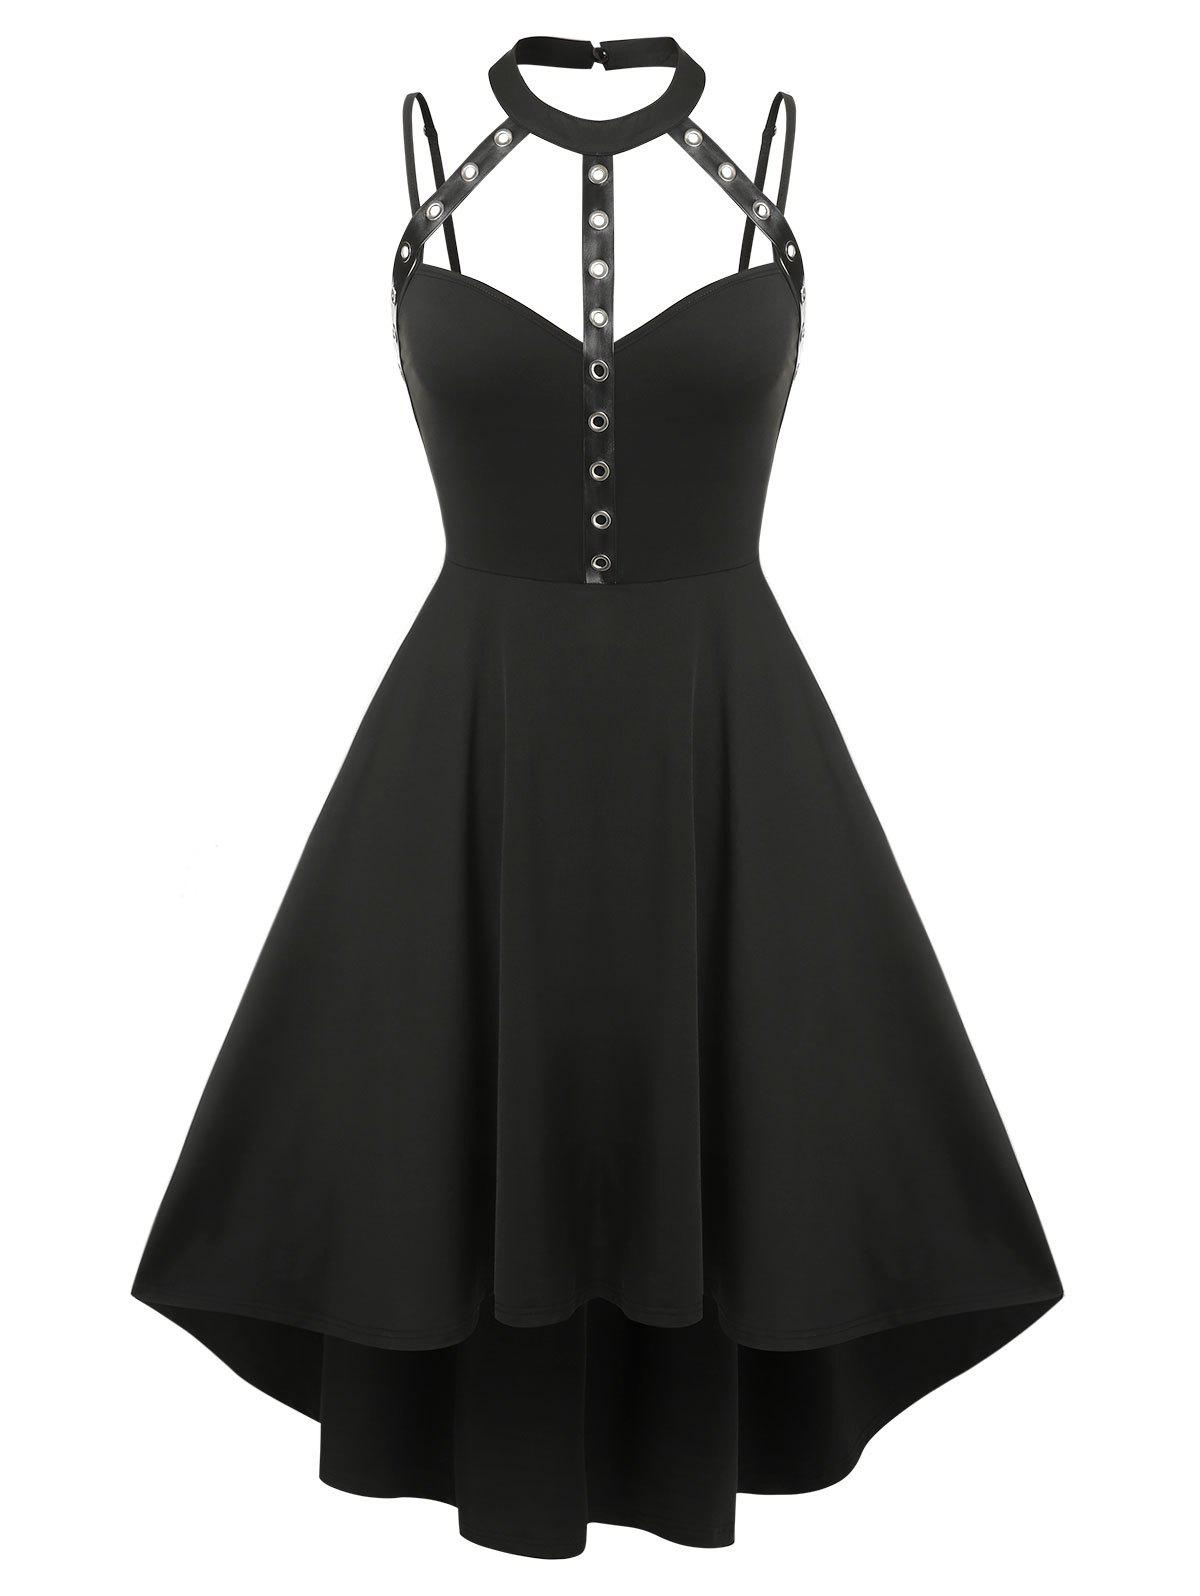 Outfit Plus Size Harness Cutout High Low Gothic Dress